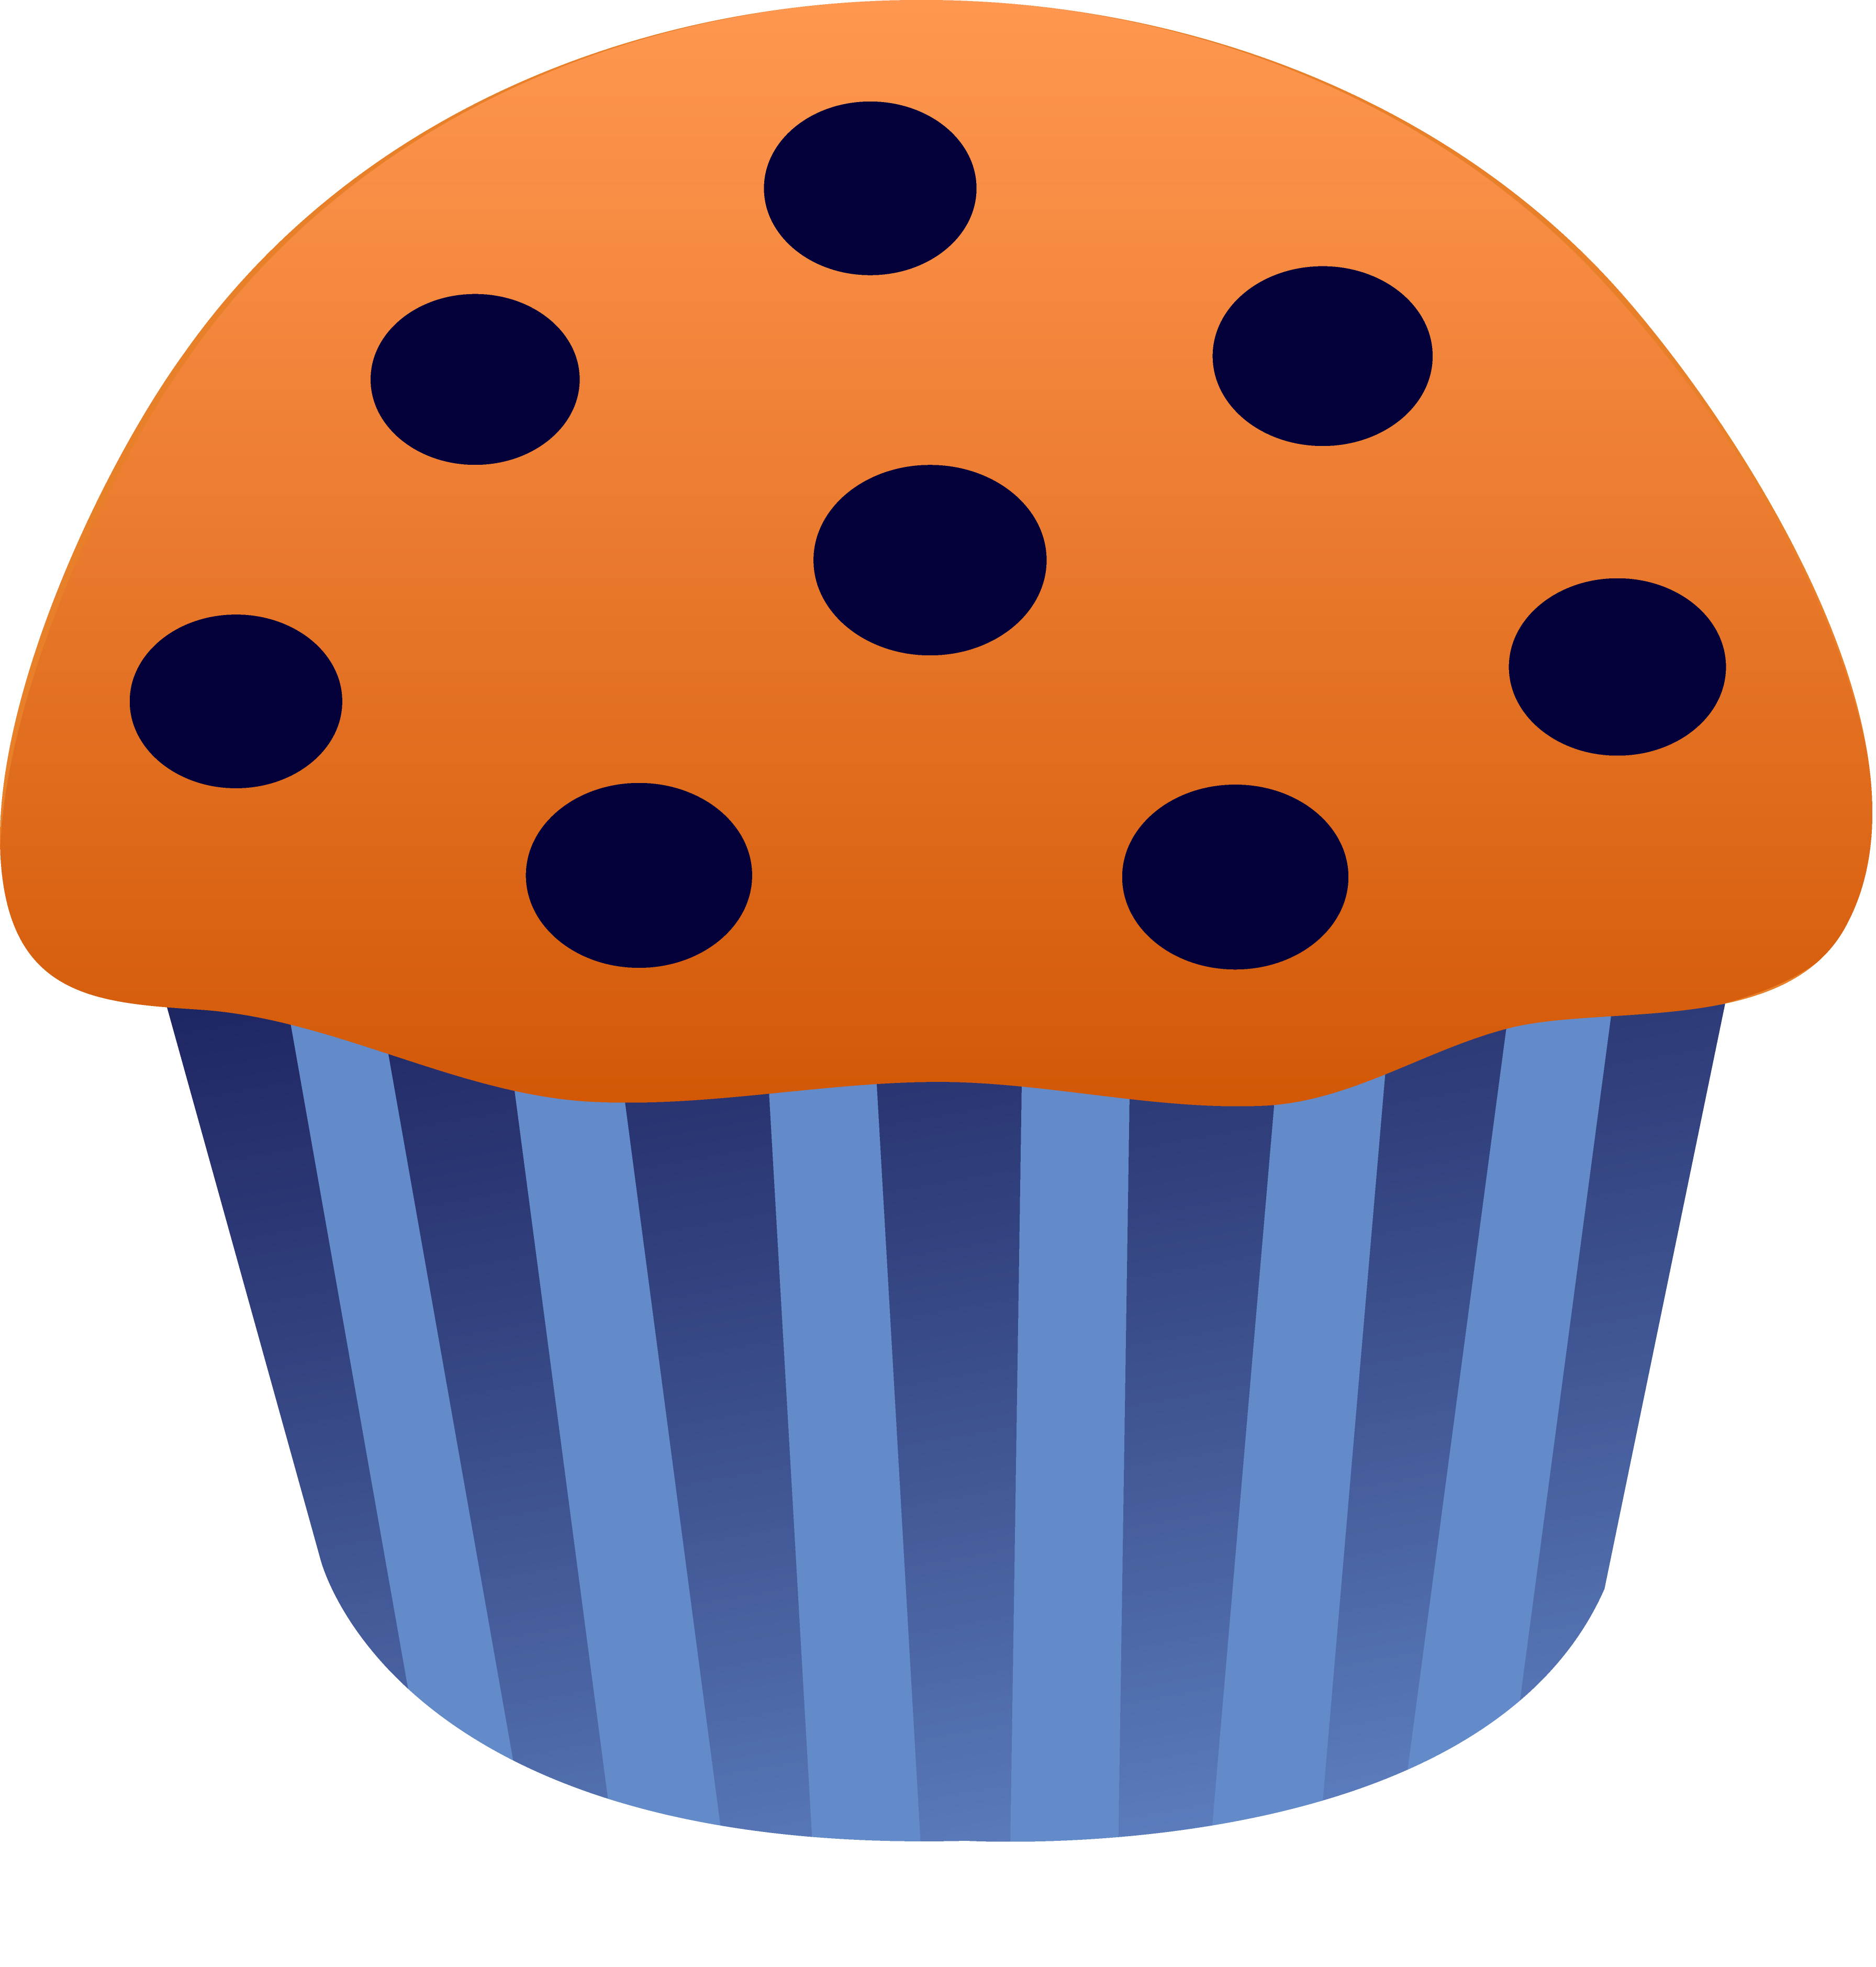 Muffin clipart baked goods. Free muffins cliparts download